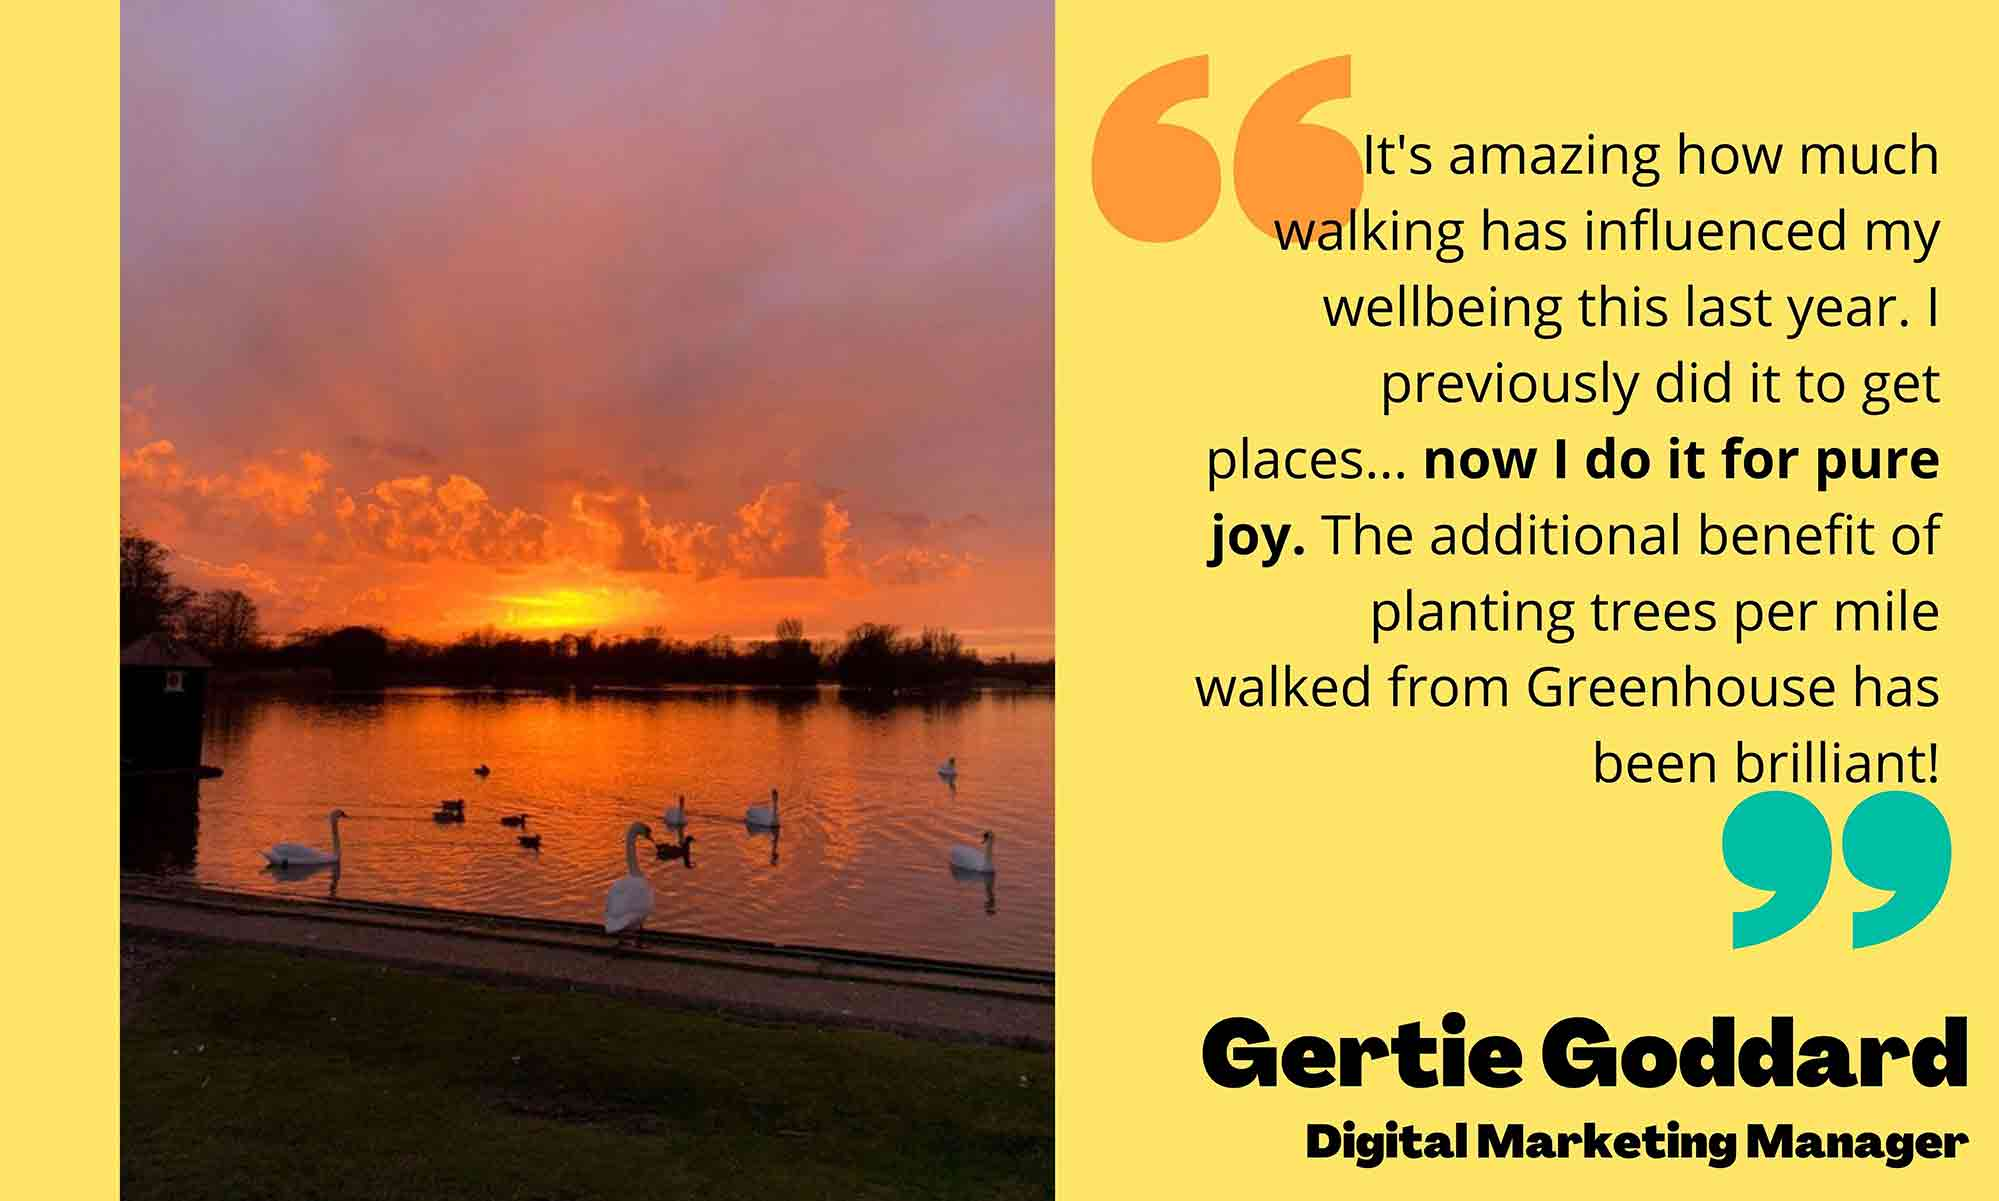 Image of sunset on left, quote from Gertie Goddard on right